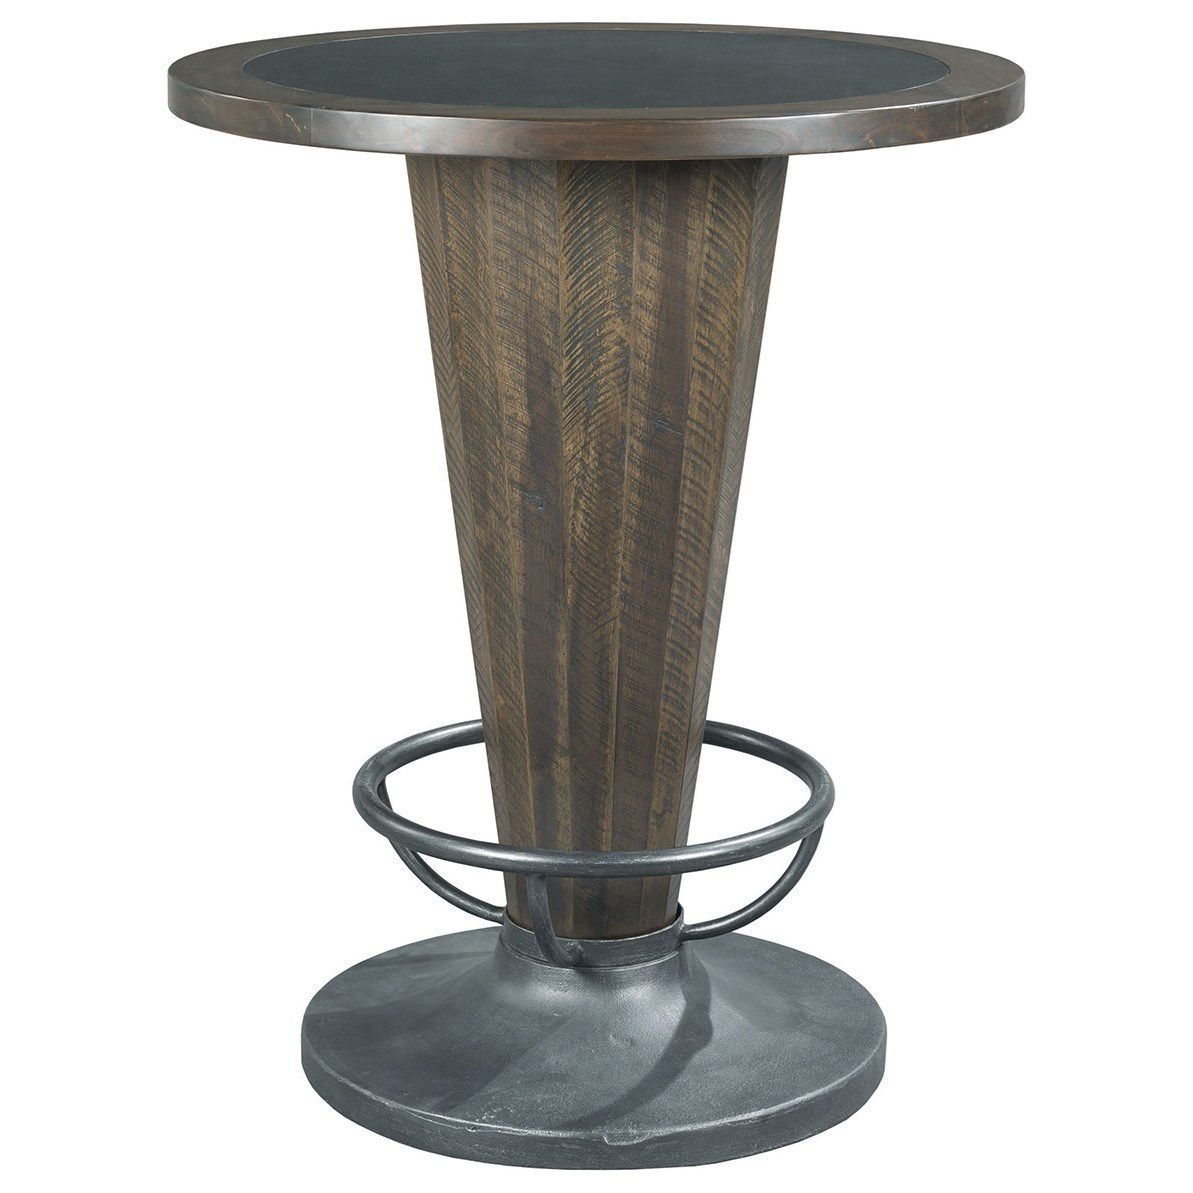 Hidden Treasures Cone Shaped Pub Table By Hammary